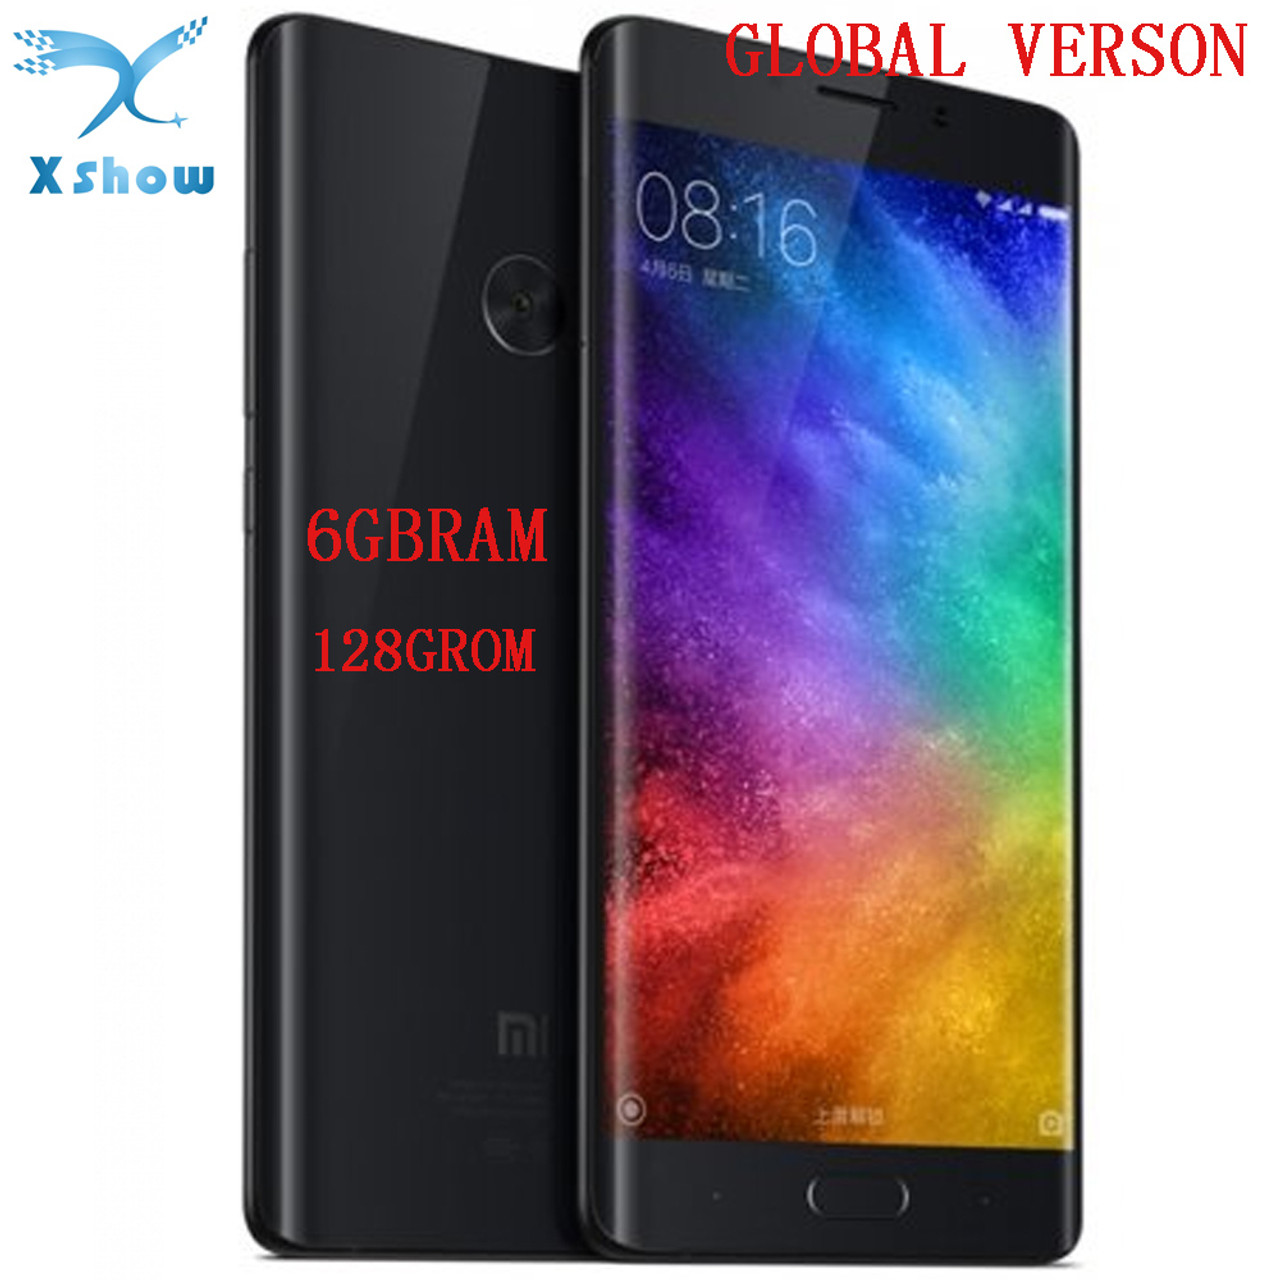 mported Xiaomi Mi Note 2 Prime 6GB RAM 128GB ROM Mobile Phone Dual 3D Glass  Snapdragon 821 5 7